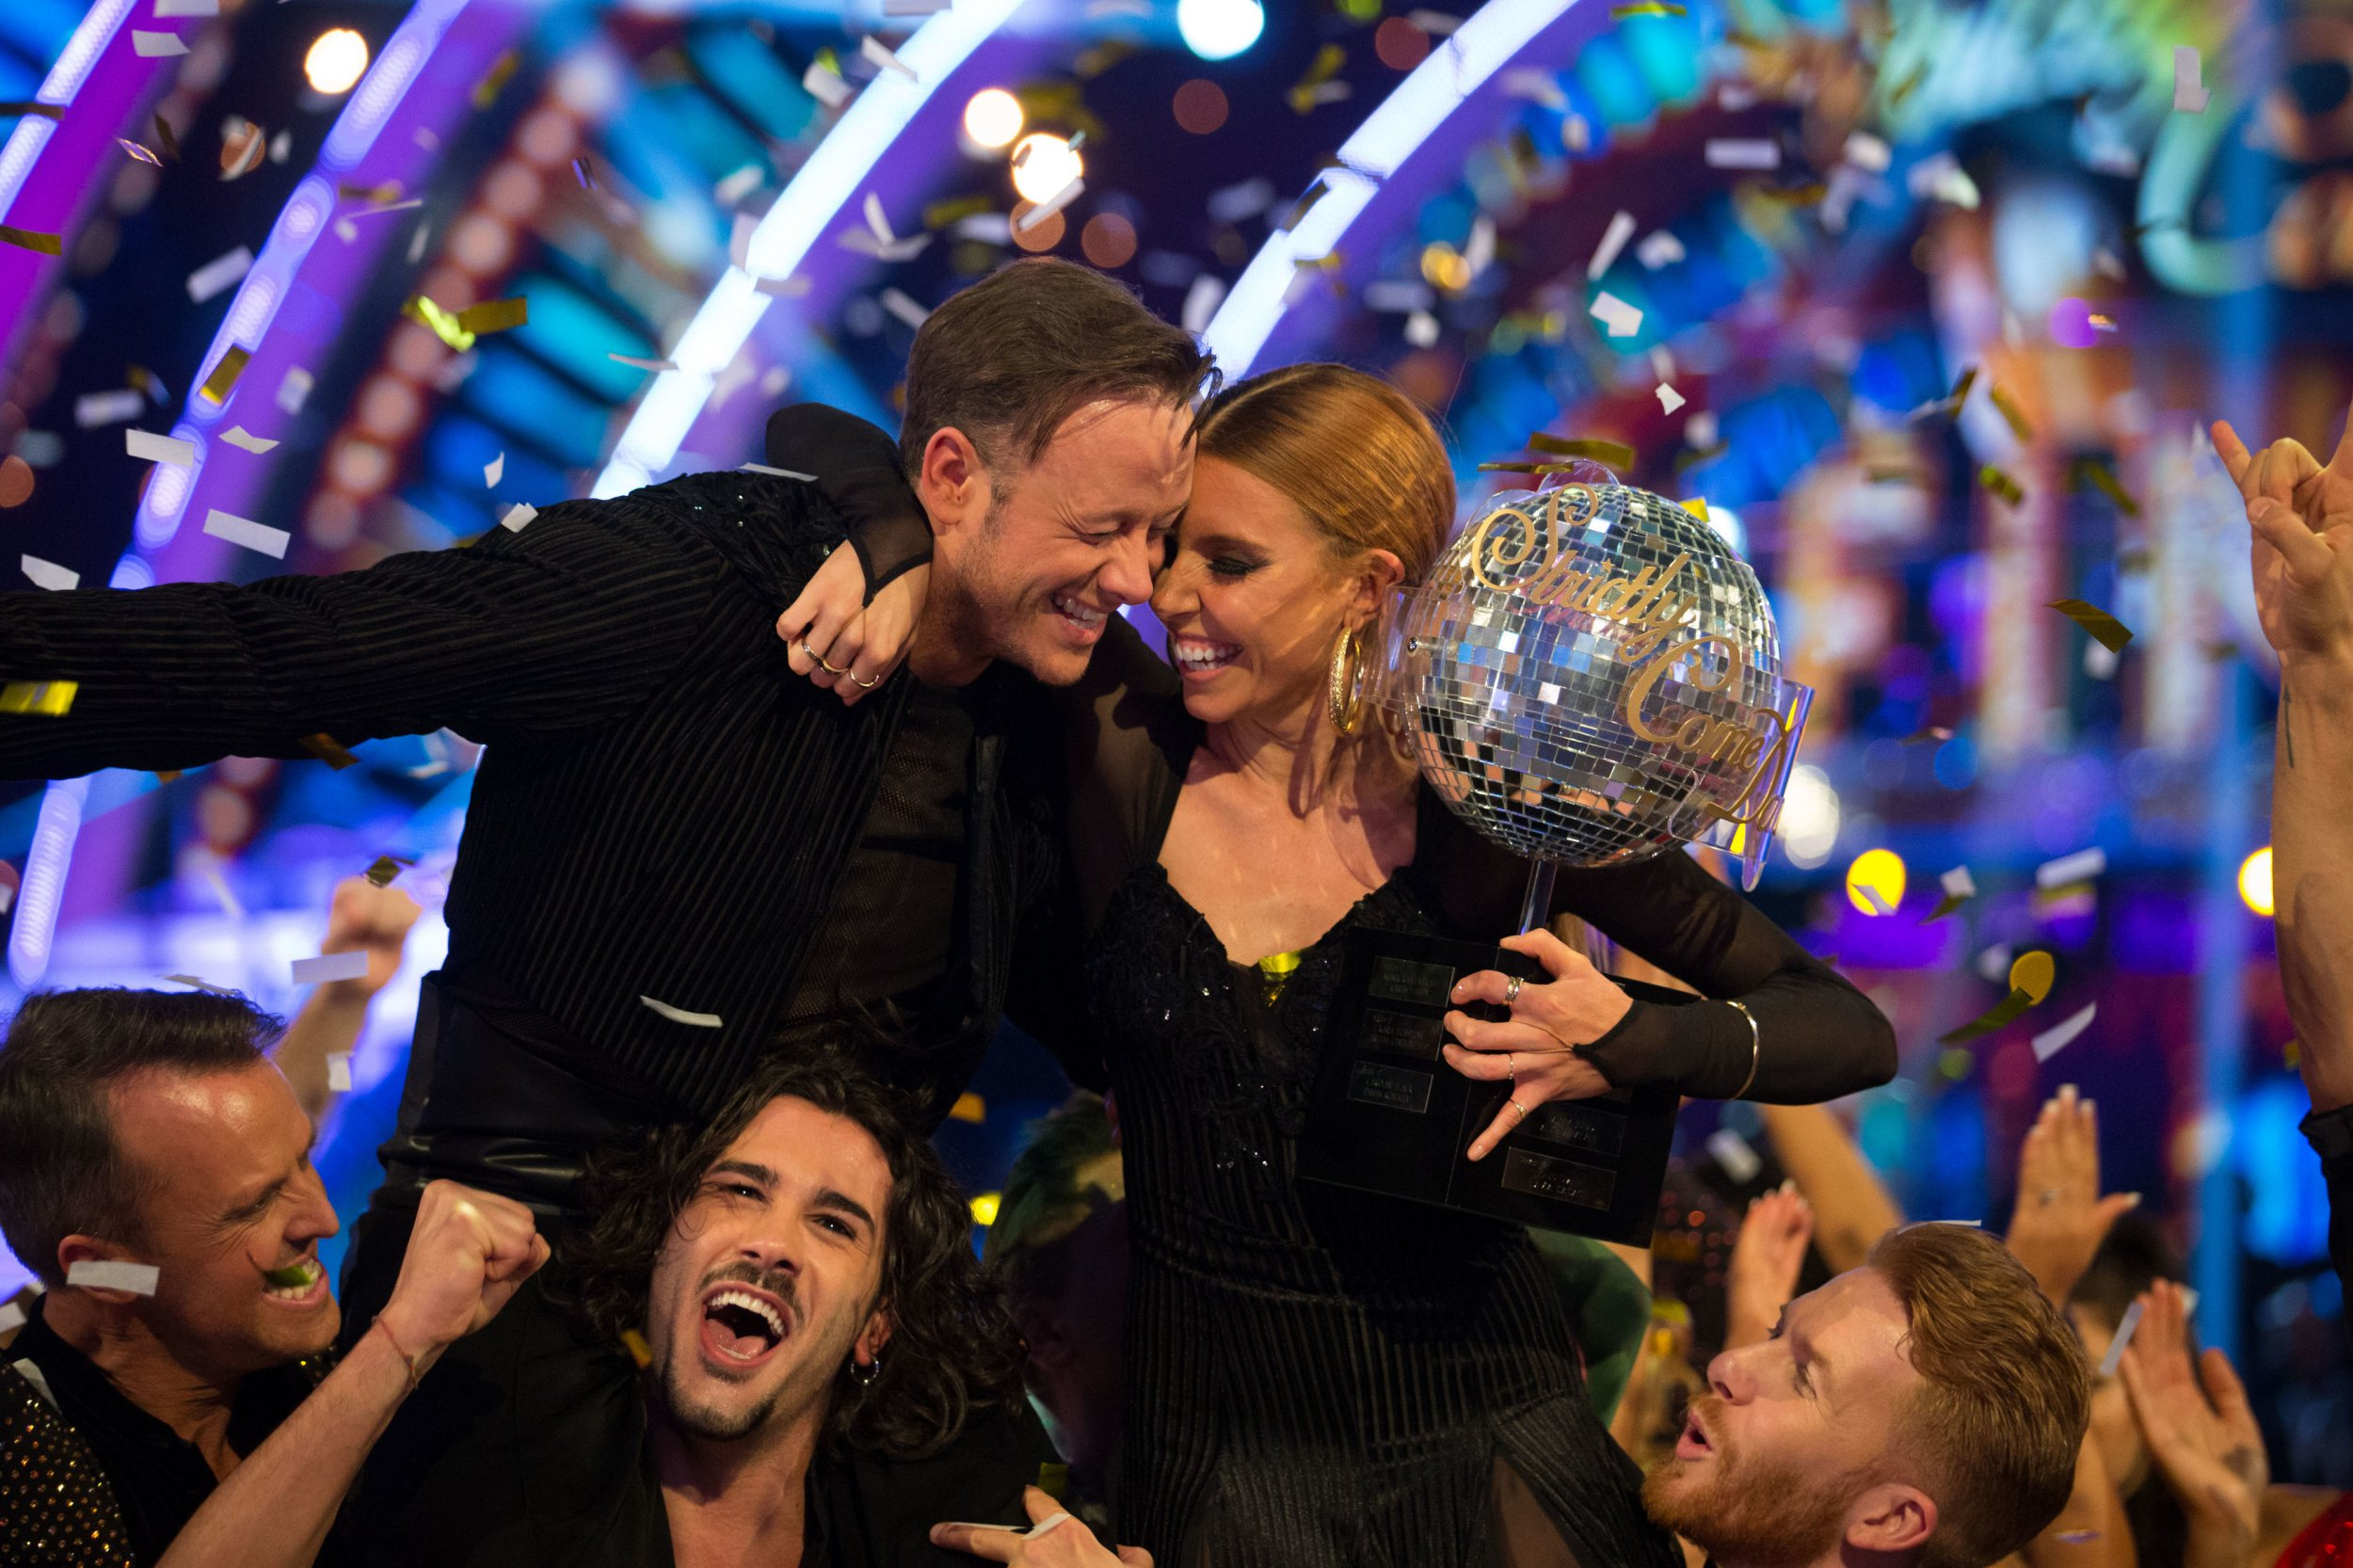 For use in UK, Ireland or Benelux countries only BBC handout photo dated 15/12/18 of Strictly Come Dancing 2018 winners Kevin Clifton and Stacey Dooley celebrating with the glitterball trophy. PRESS ASSOCIATION Photo. Issue date: Saturday December 15, 2018. See PA story SHOWBIZ Strictly. Photo credit should read: Guy Levy/BBC/PA Wire NOTE TO EDITORS: Not for use more than 21 days after issue. You may use this picture without charge only for the purpose of publicising or reporting on current BBC programming, personnel or other BBC output or activity within 21 days of issue. Any use after that time MUST be cleared through BBC Picture Publicity. Please credit the image to the BBC and any named photographer or independent programme maker, as described in the caption.